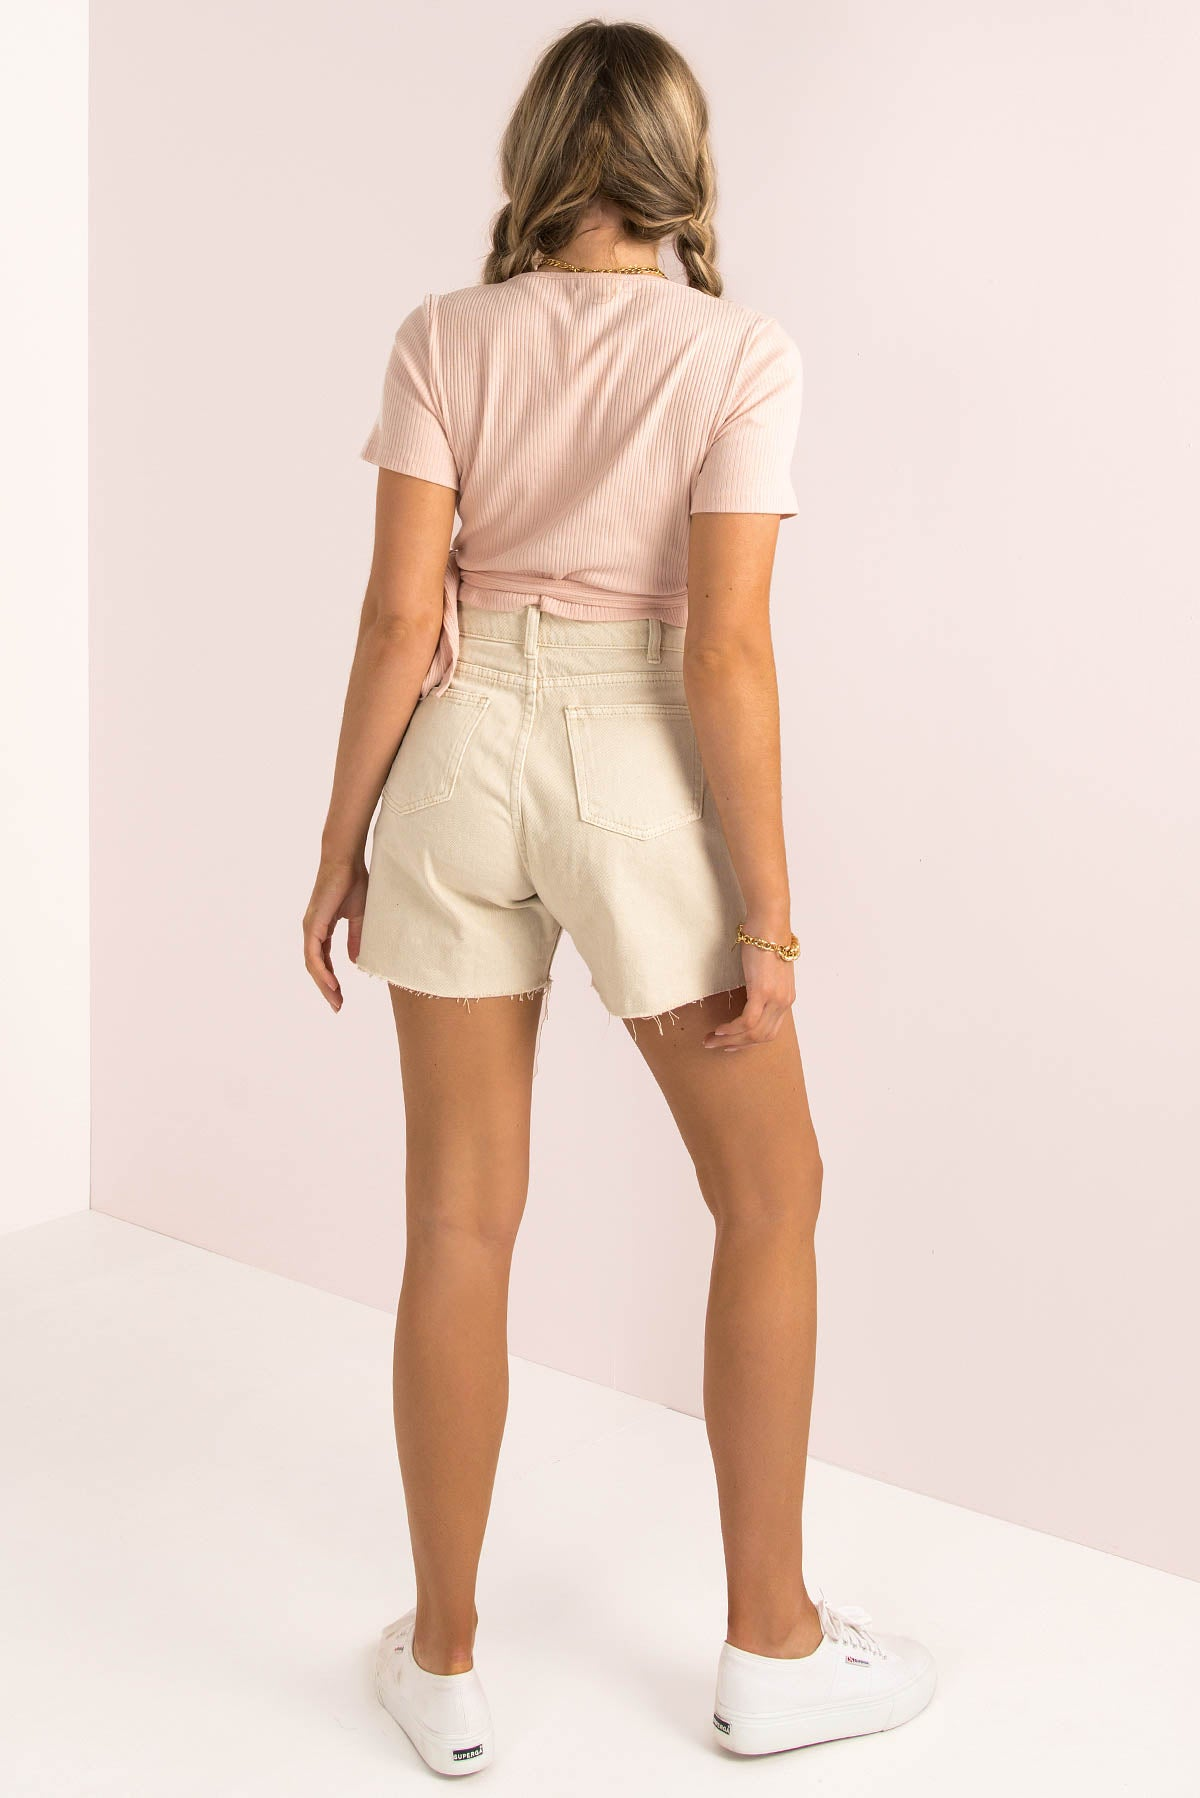 Bessie Top / Blush